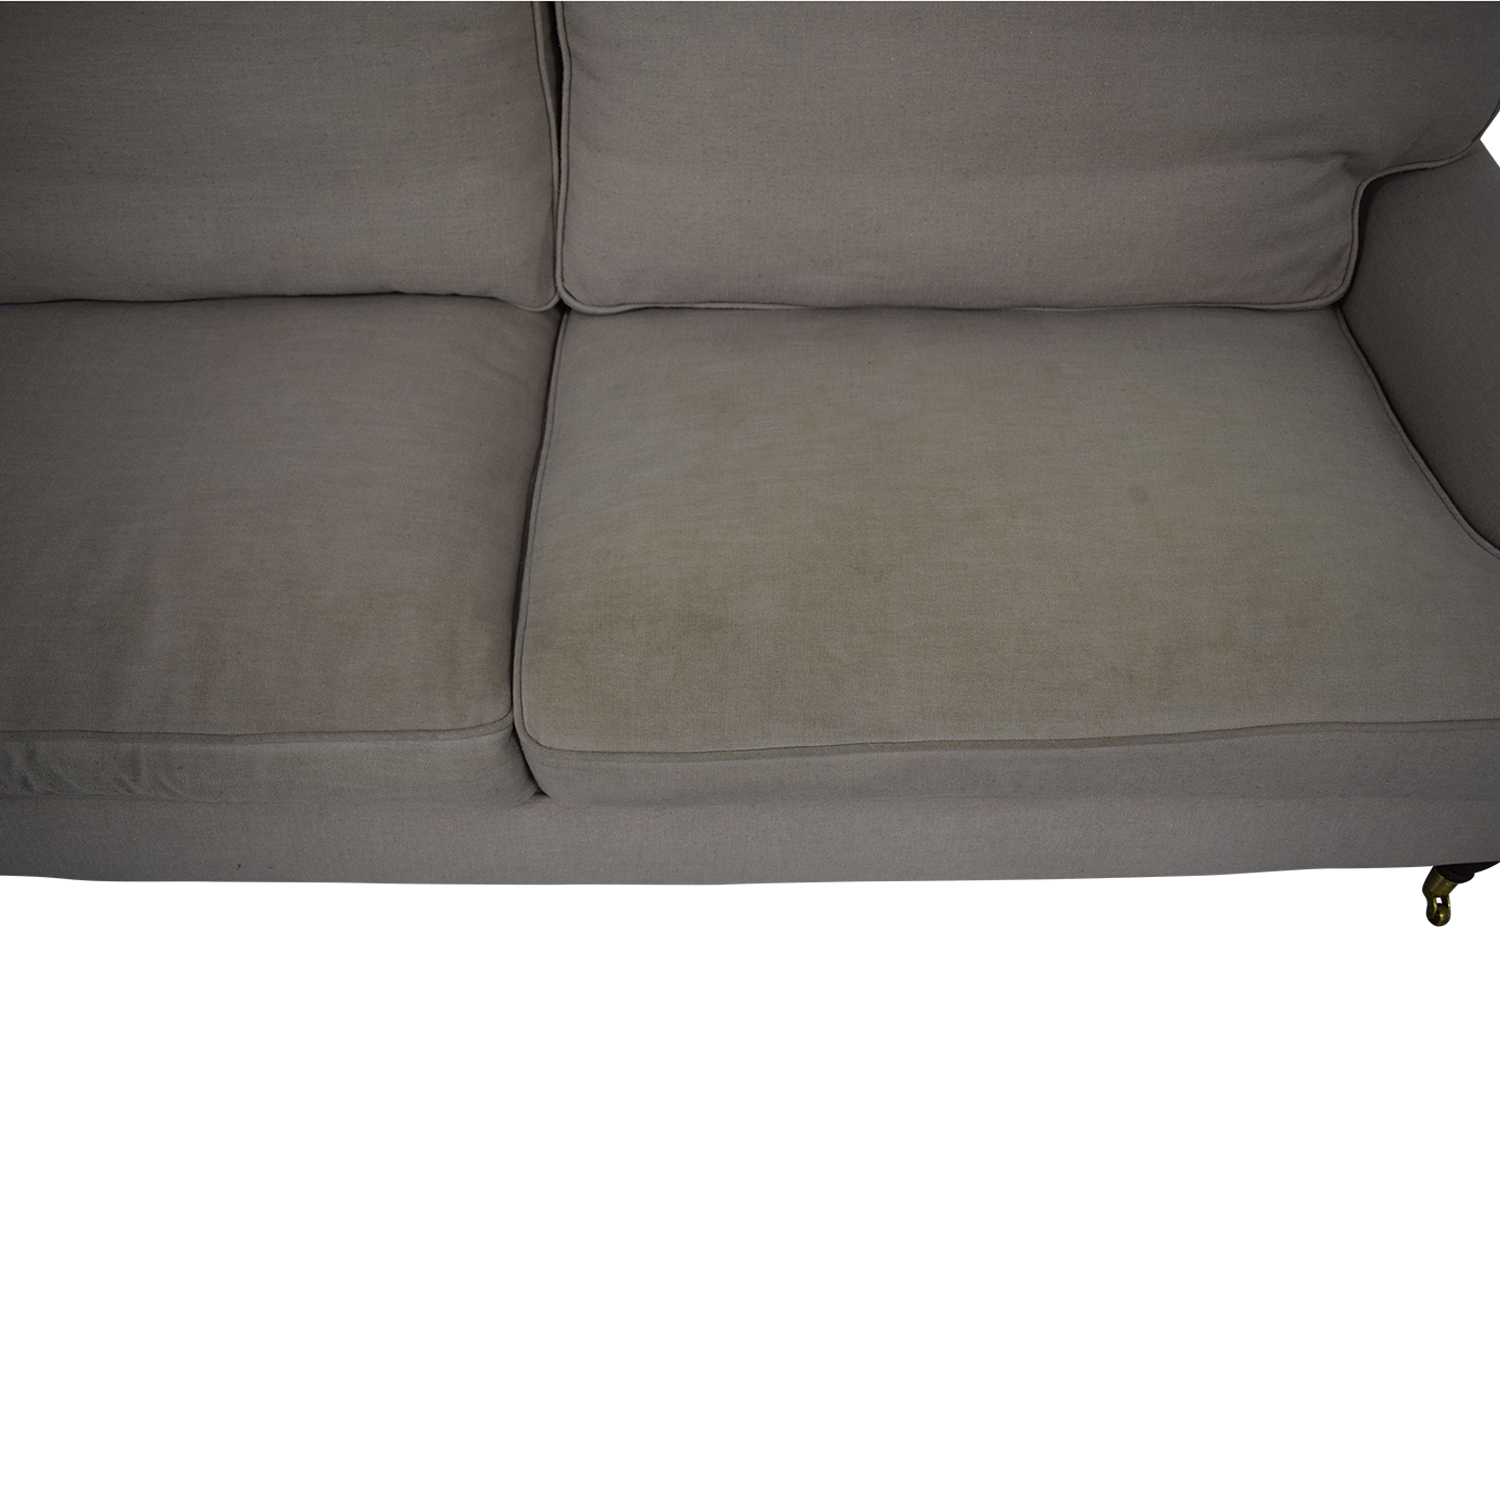 Safavieh Safavieh Roll Arm Sofa discount